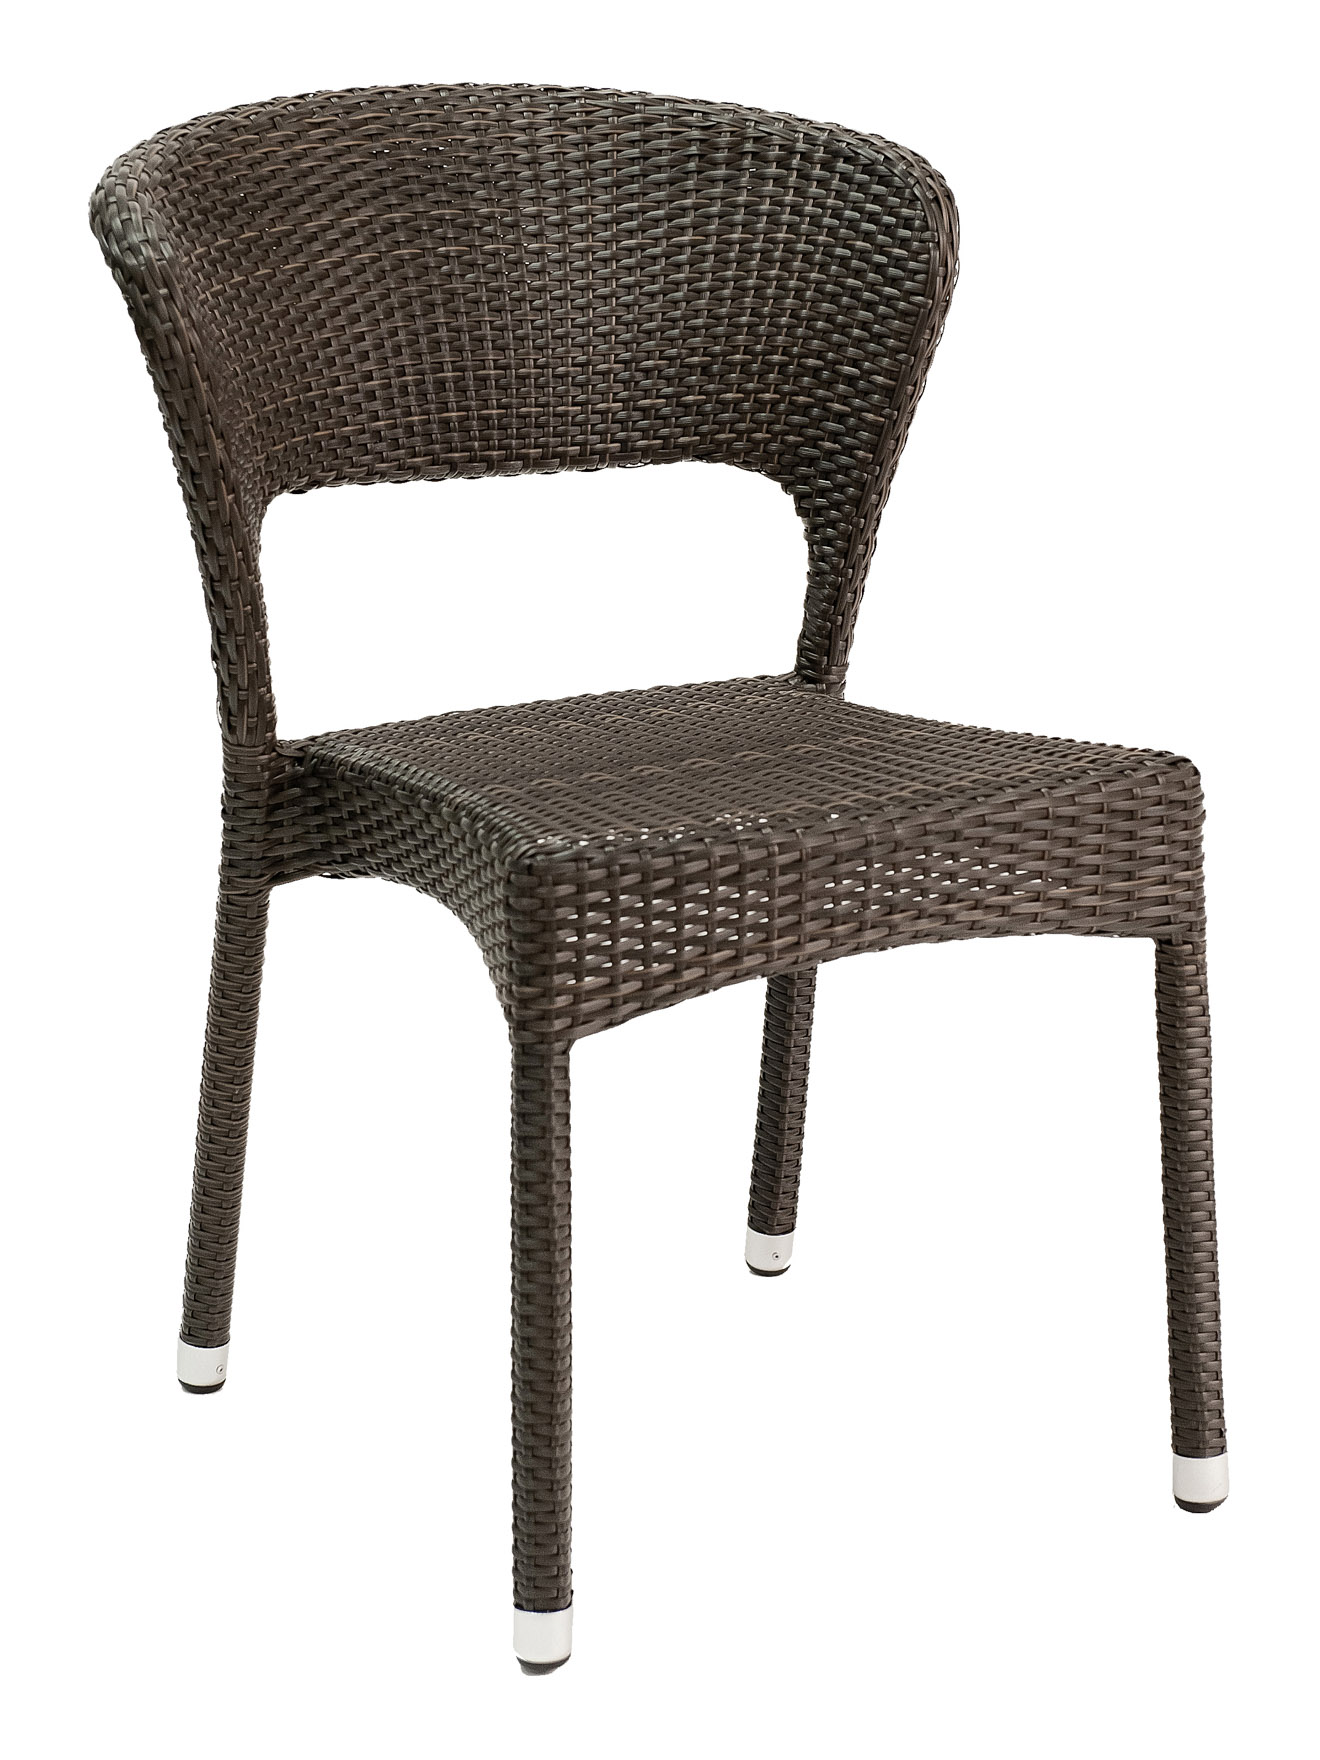 Wicker Side Chair Biscayne Bay Open Back Wicker Side Chair Sw08c Commercial